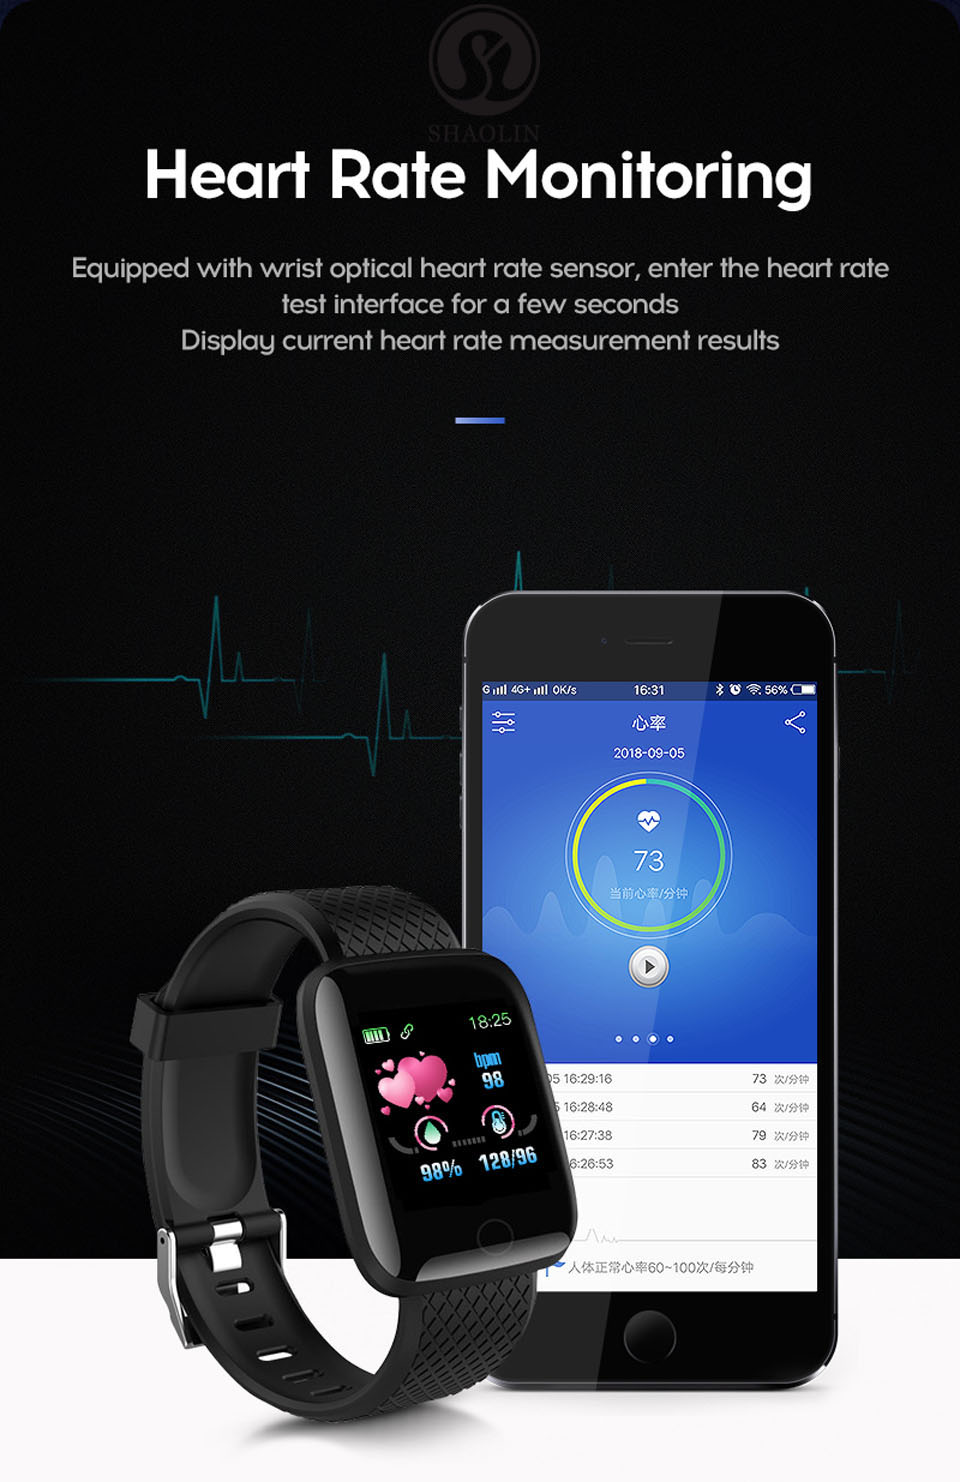 4 Heart Rate Monitoring